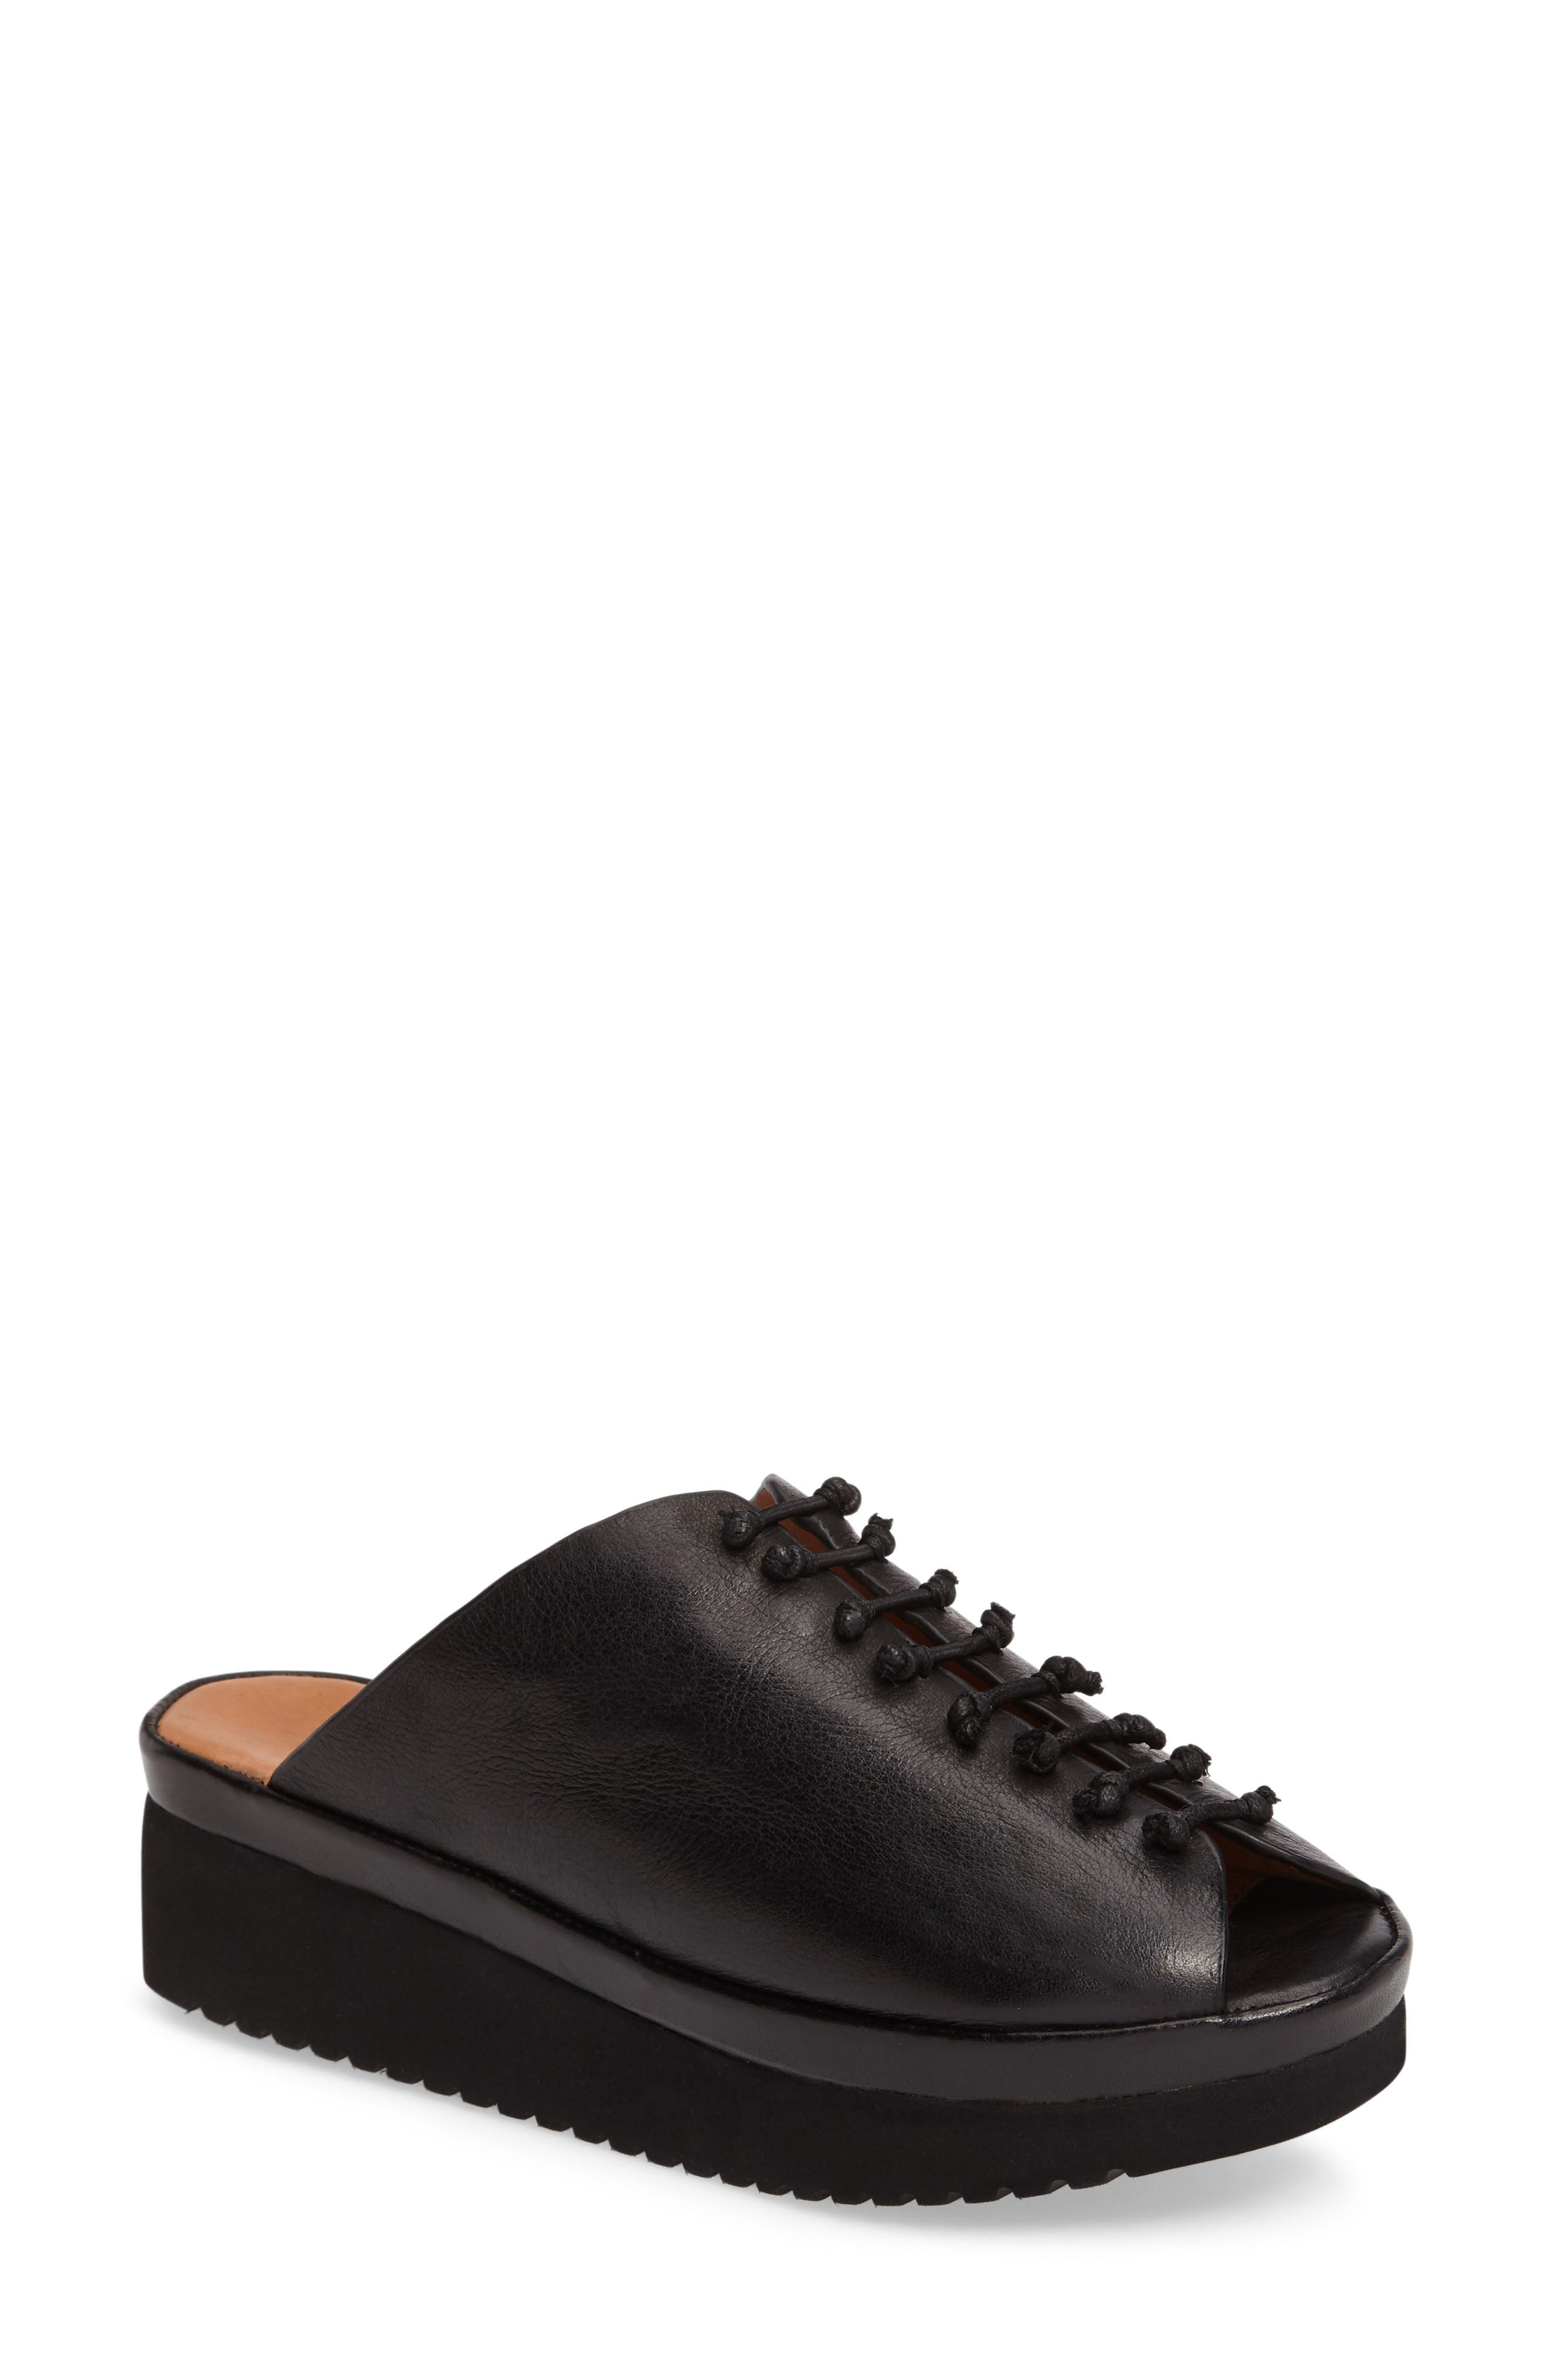 Arienne Wedge Platform Sandal,                         Main,                         color, Black Leather